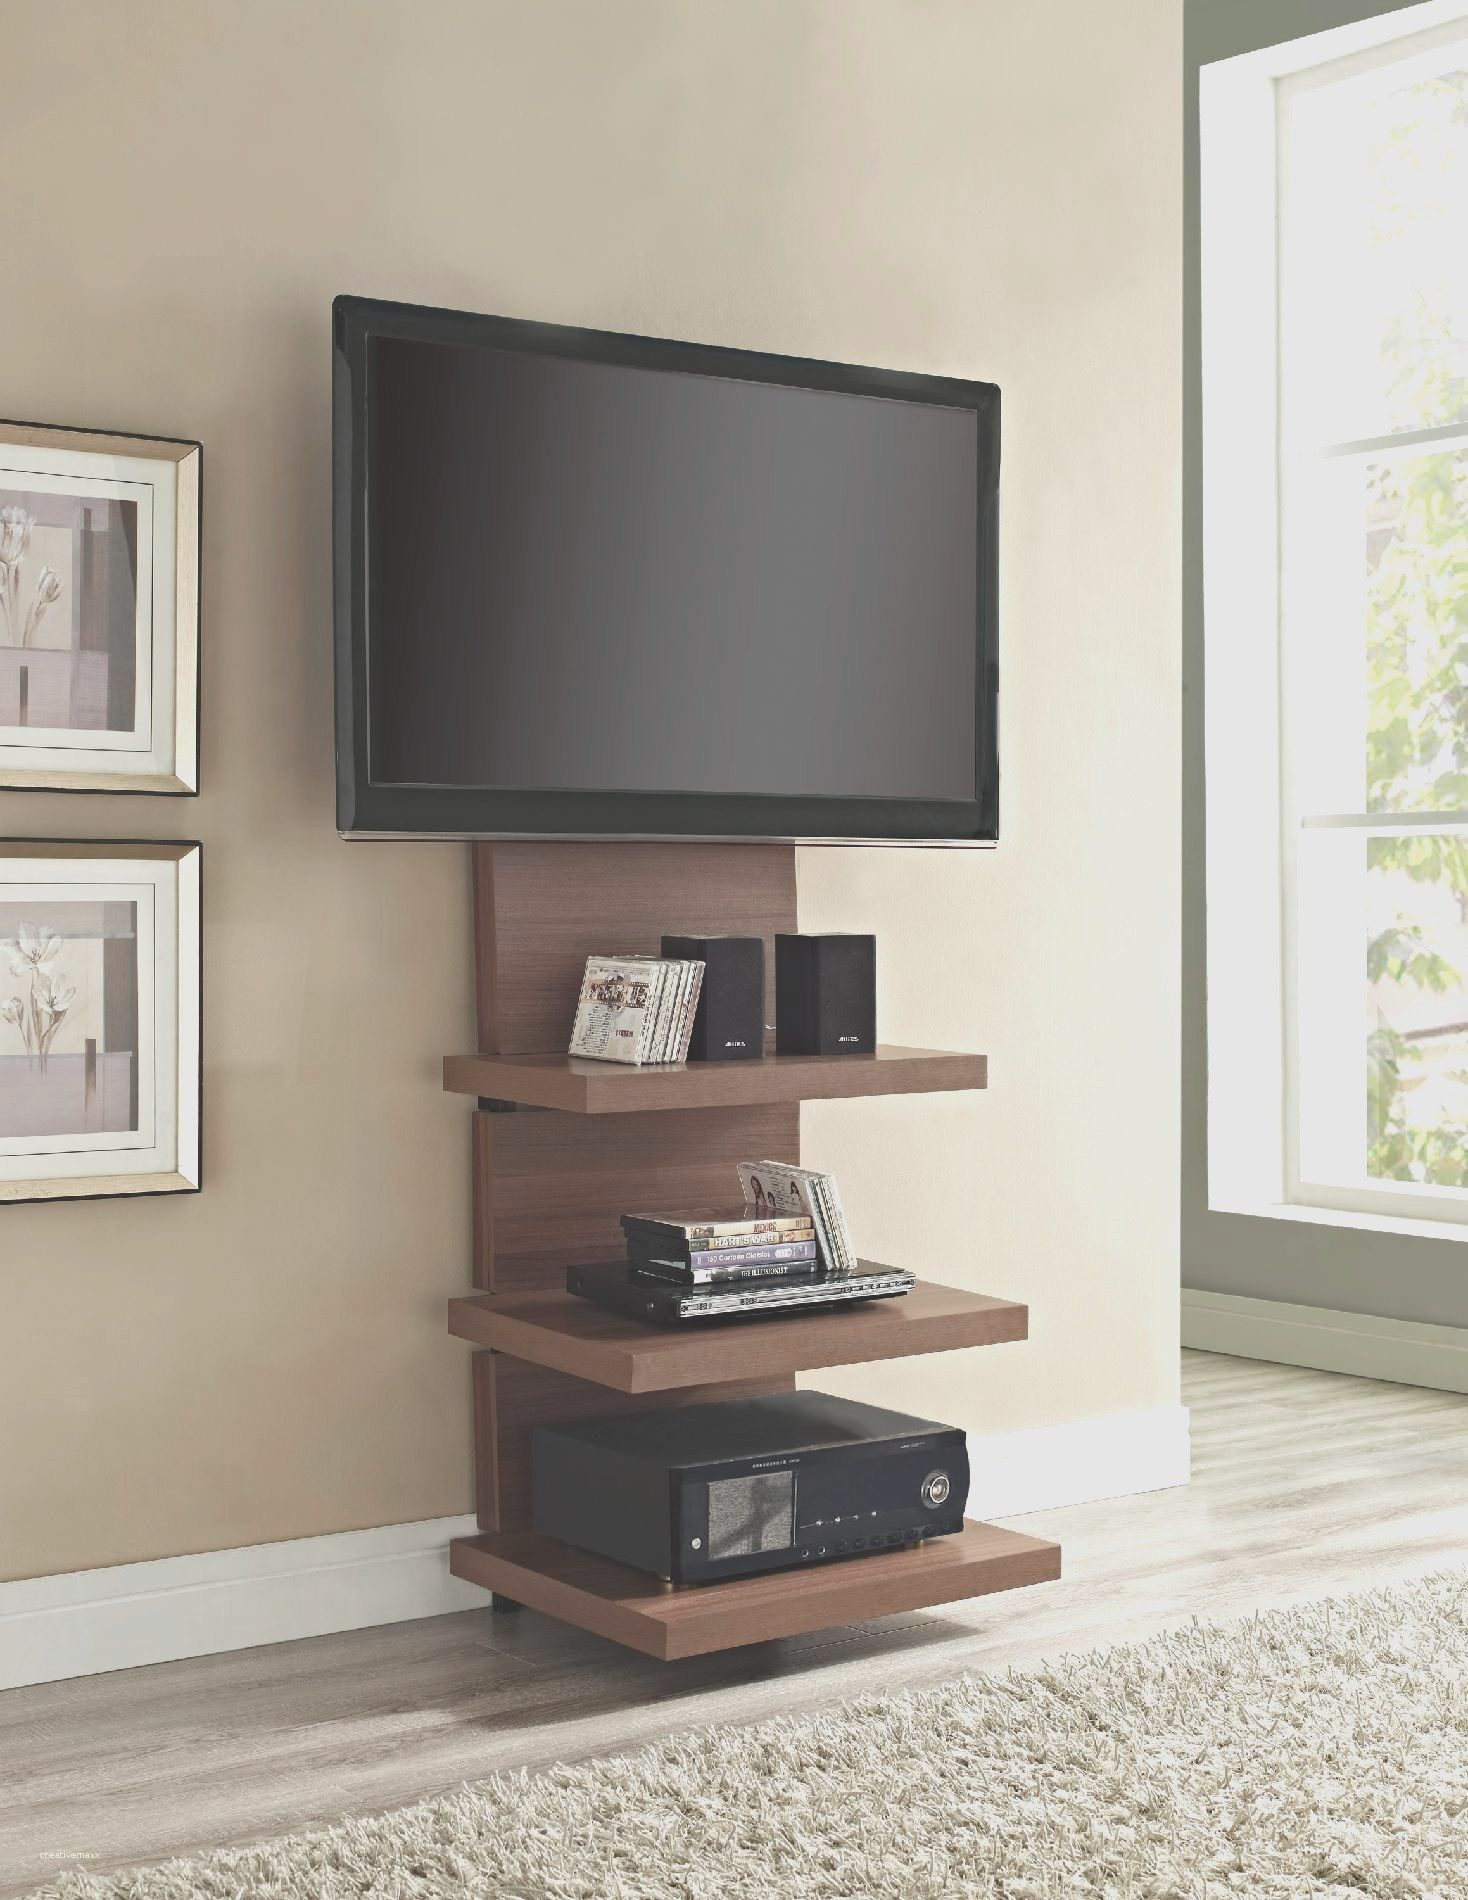 Diy Tv Stand Ideas For Your Room Interior Beautiful 50 Creative